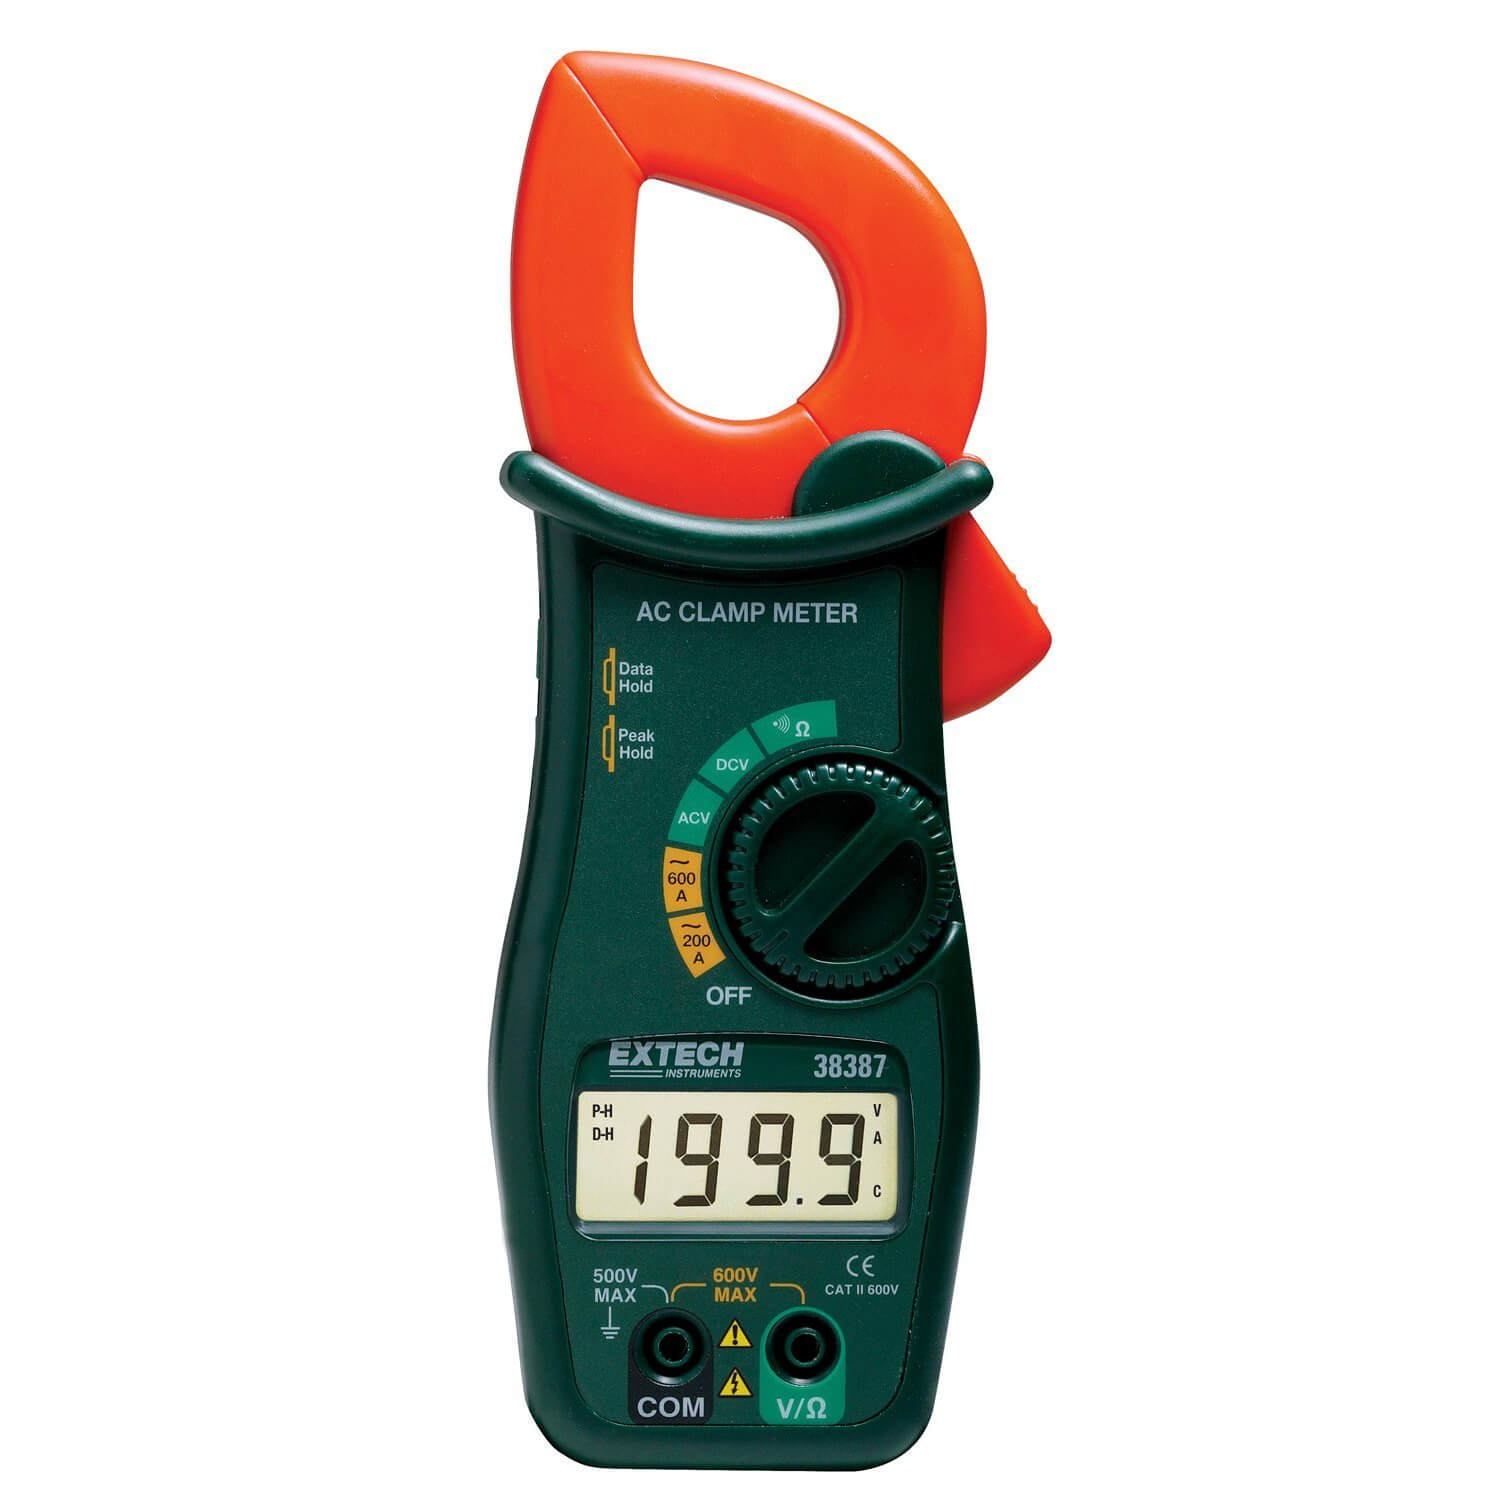 Clamp Meter How Much : Extech a ac clamp meter